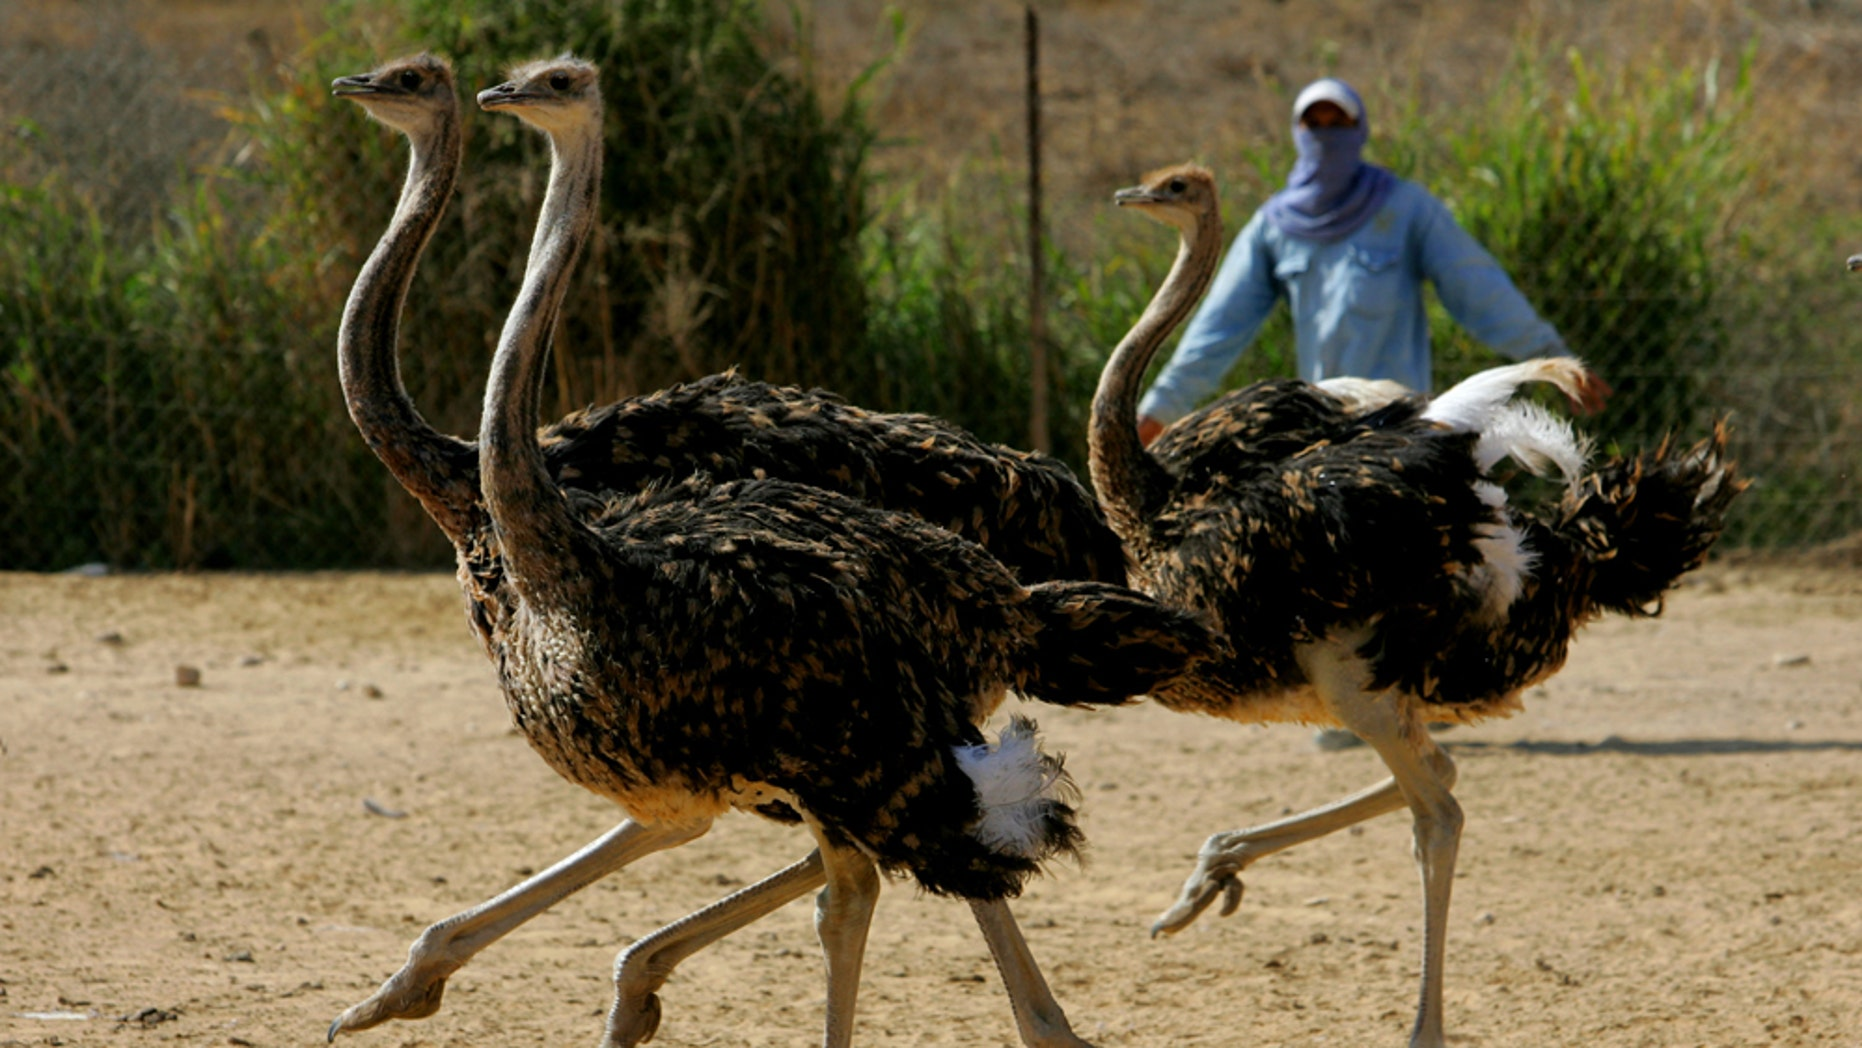 TSEELIM, ISRAEL - OCTOBER 27:  A worker tries to catch 4-month-old ostrich chicks for vaccination against influenza and Newcastle disease at the Van Grevenbroek family farm October 27, 2005 at Tseelim, Southern Israel. The farm, where some 10,000 birds are bred annually and slaughtered at the age of one year for their skin, feathers and meat, is the only one of its kind in Israel that exports almost all of its production to Europe, and is threatened with the loss of its international markets if the H5N1 Avian Flu virus strikes Israel.  (Photo by David Silverman/Getty Images)